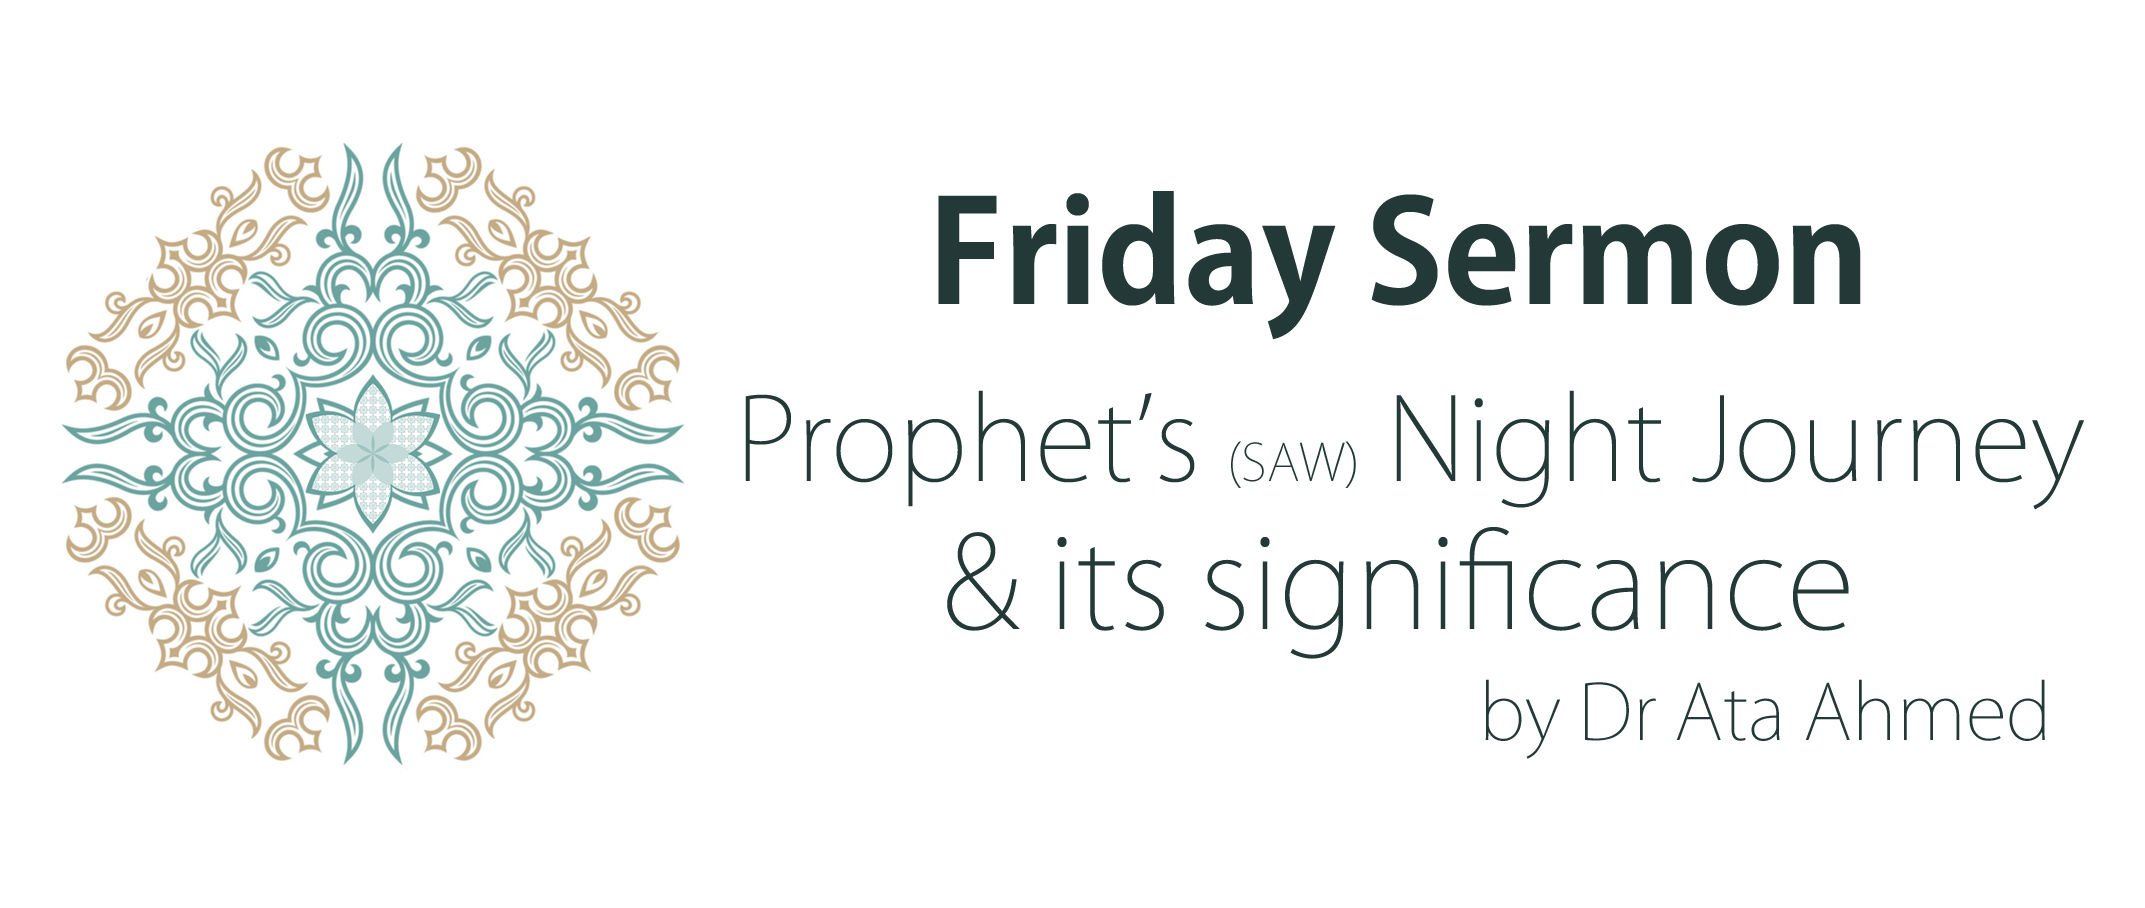 Friday Sermon: Significant of the Prophet Muhammad's (SAW) night journey